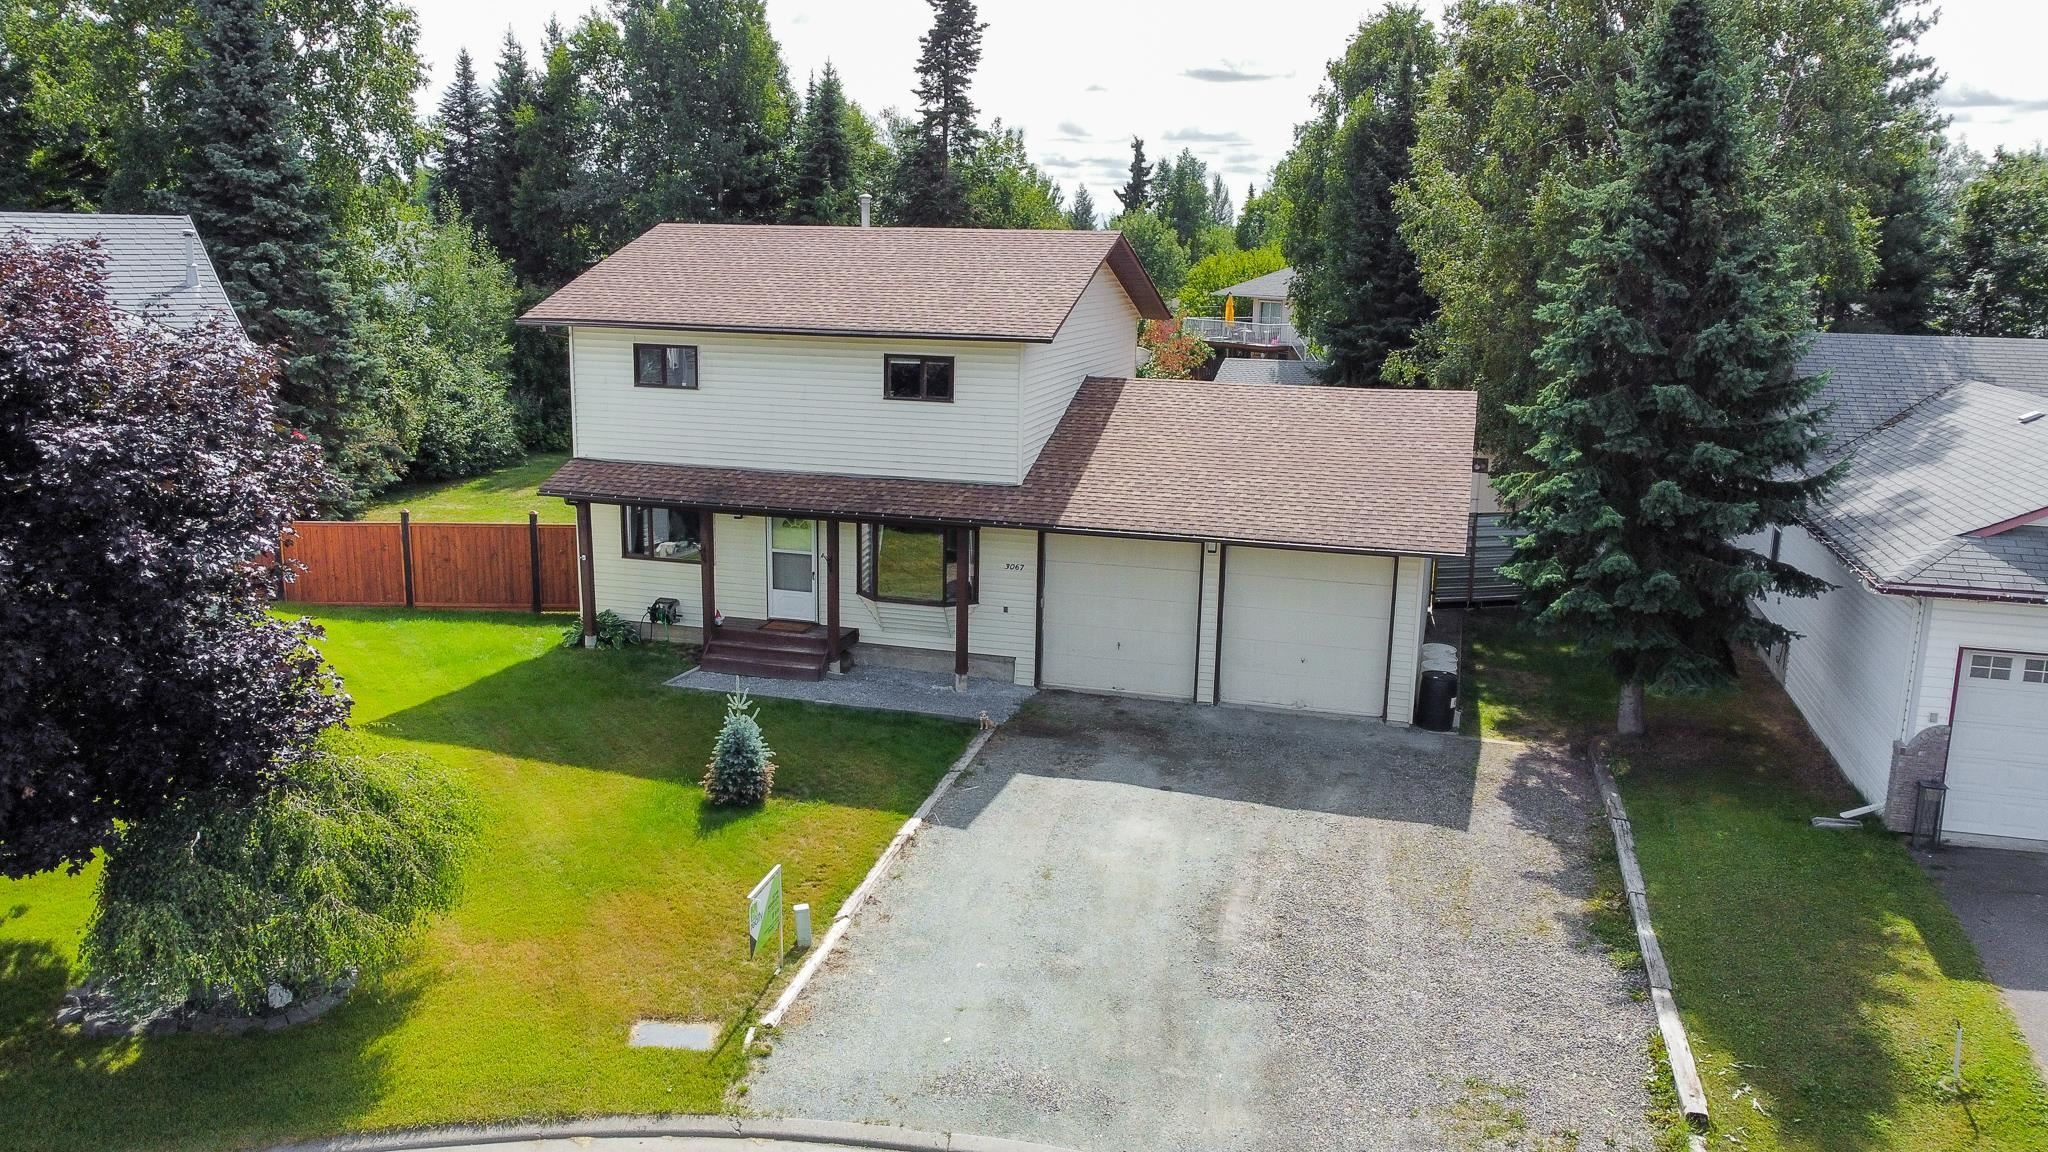 Main Photo: 3067 WHITESAIL Place in Prince George: Valleyview House for sale (PG City North (Zone 73))  : MLS®# R2609899